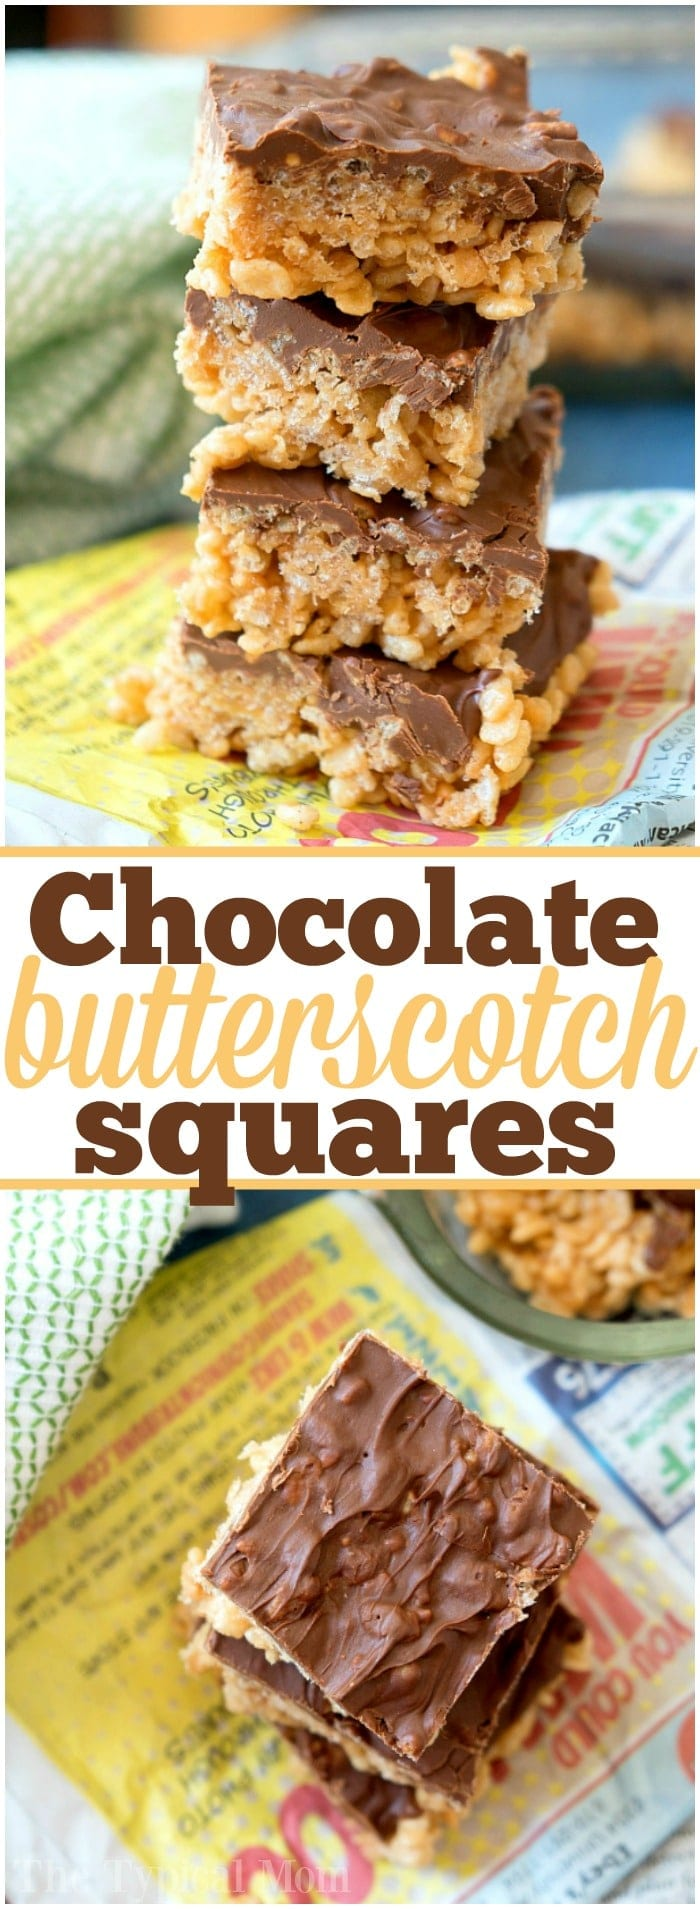 Easy no bake recipe for Scotcheroos are the best peanut butter and butterscotch recipe ever that has chocolate in it too. Super easy to make with cereal.